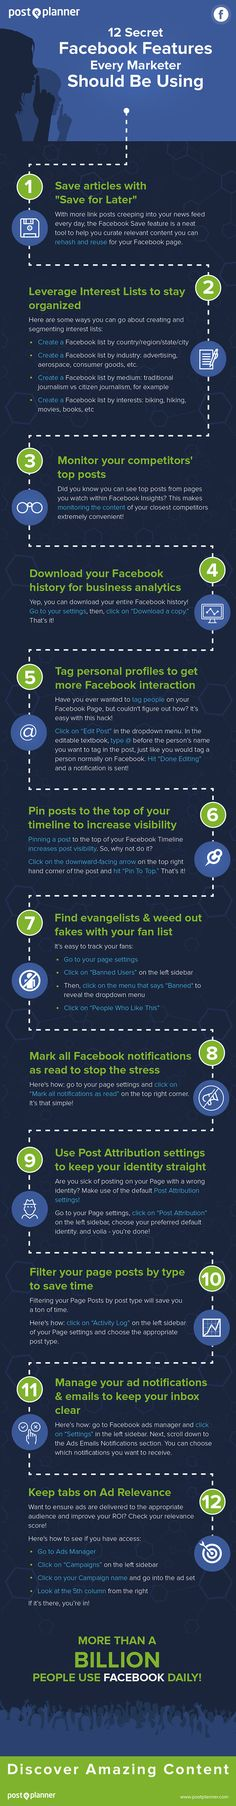 A great list of Facebook tips for marketers from @pamdyer1. Check it out to make sure you're up to date with the latest secrets!